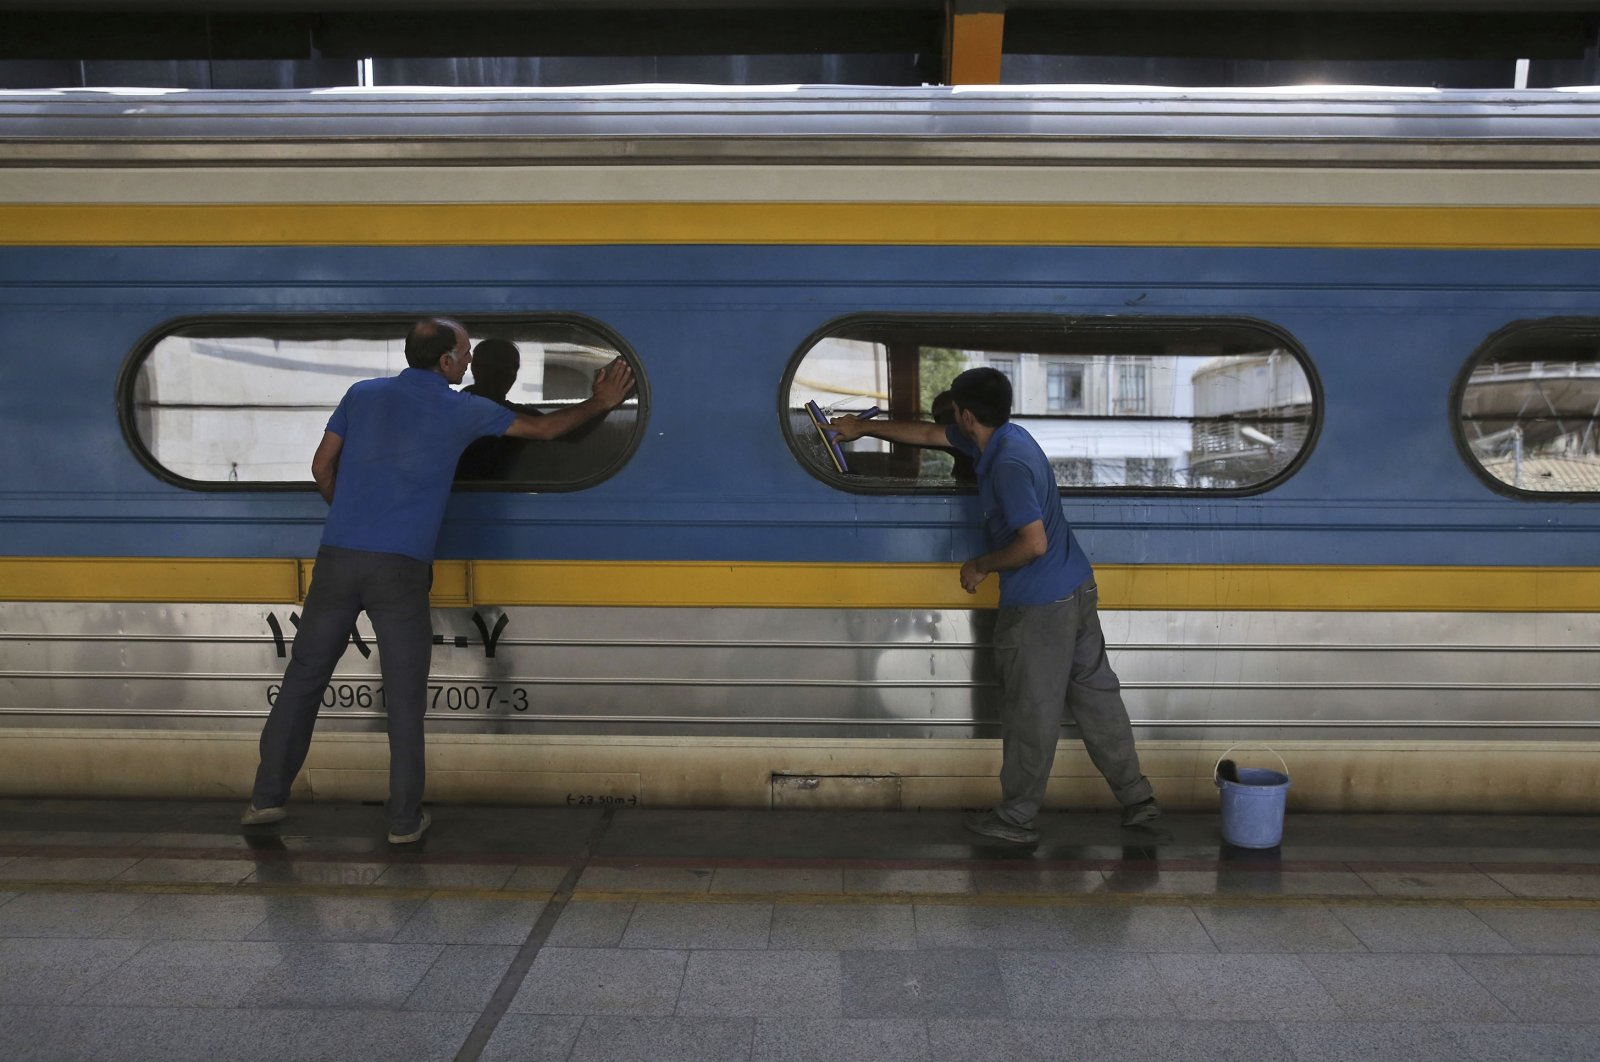 Two workers clean windows of a train's car at Tehran's central station, Tehran, Iran. July 10, 2017. (AP Photo/Vahid Salemi)